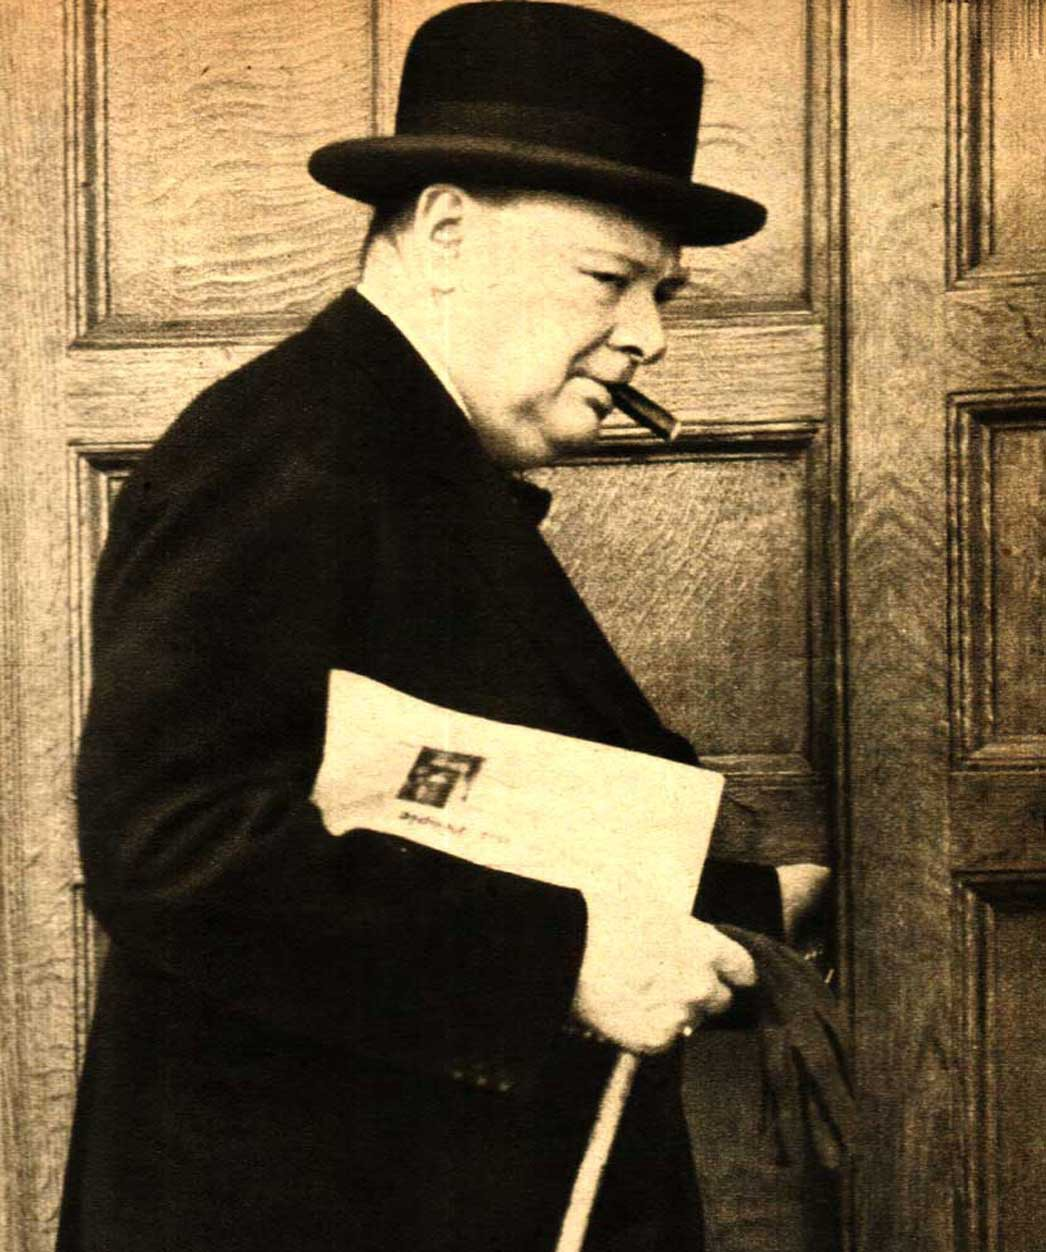 discourse analysis on winston churchill and